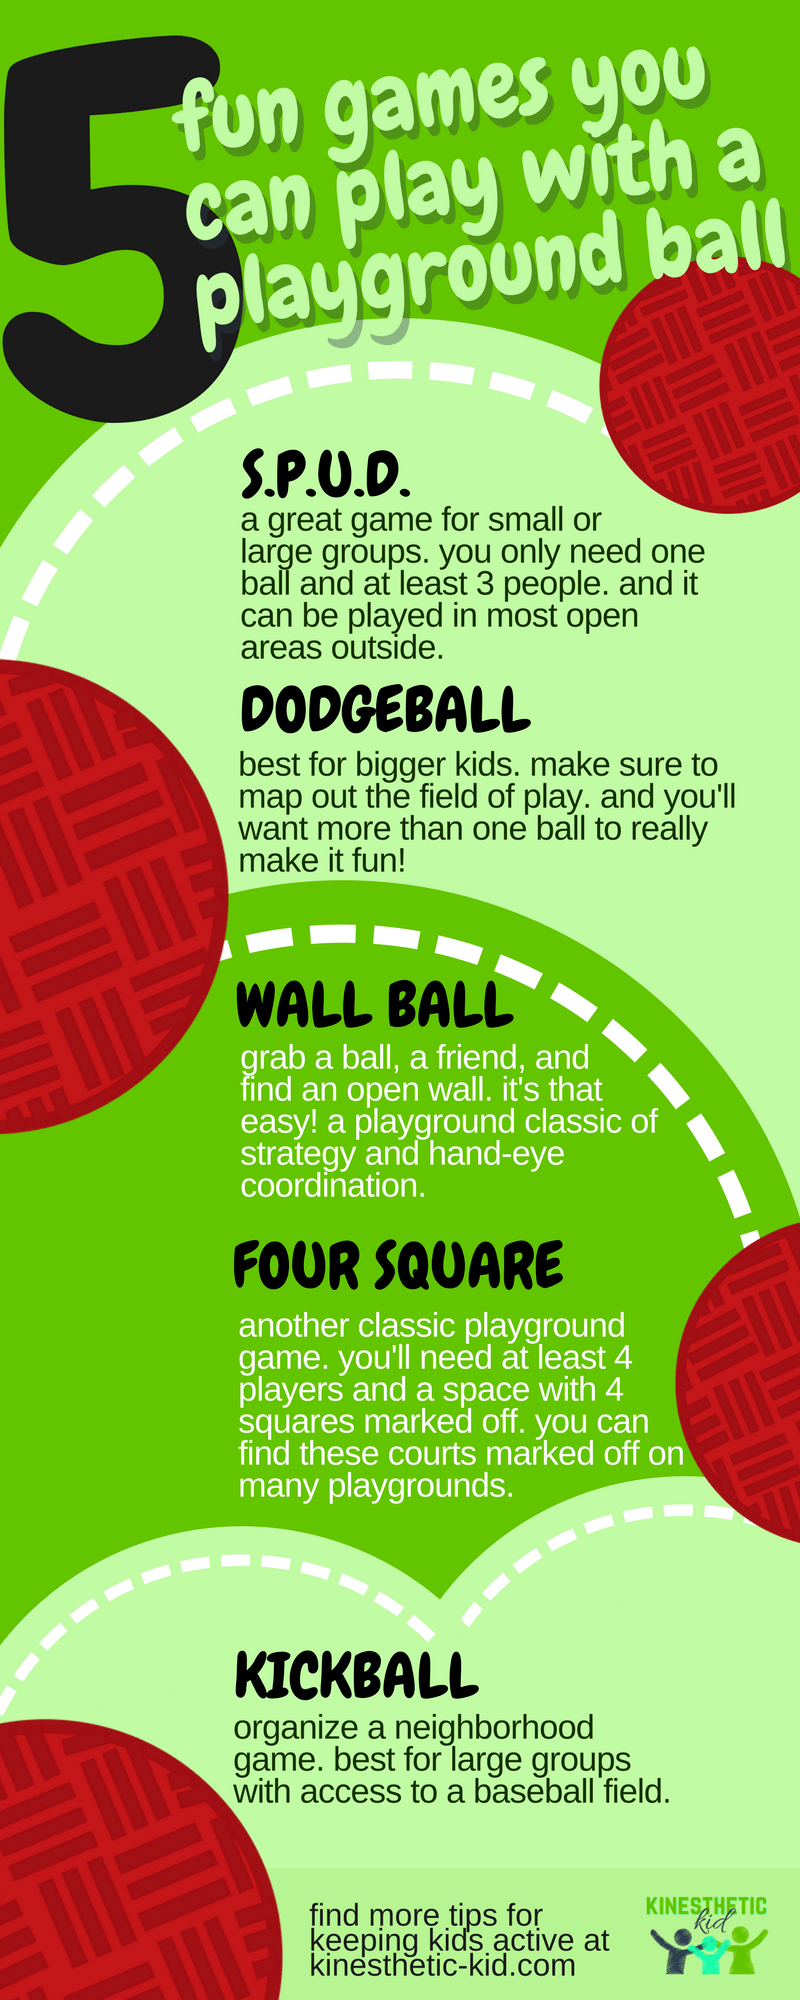 5 great games to play with a playground ball